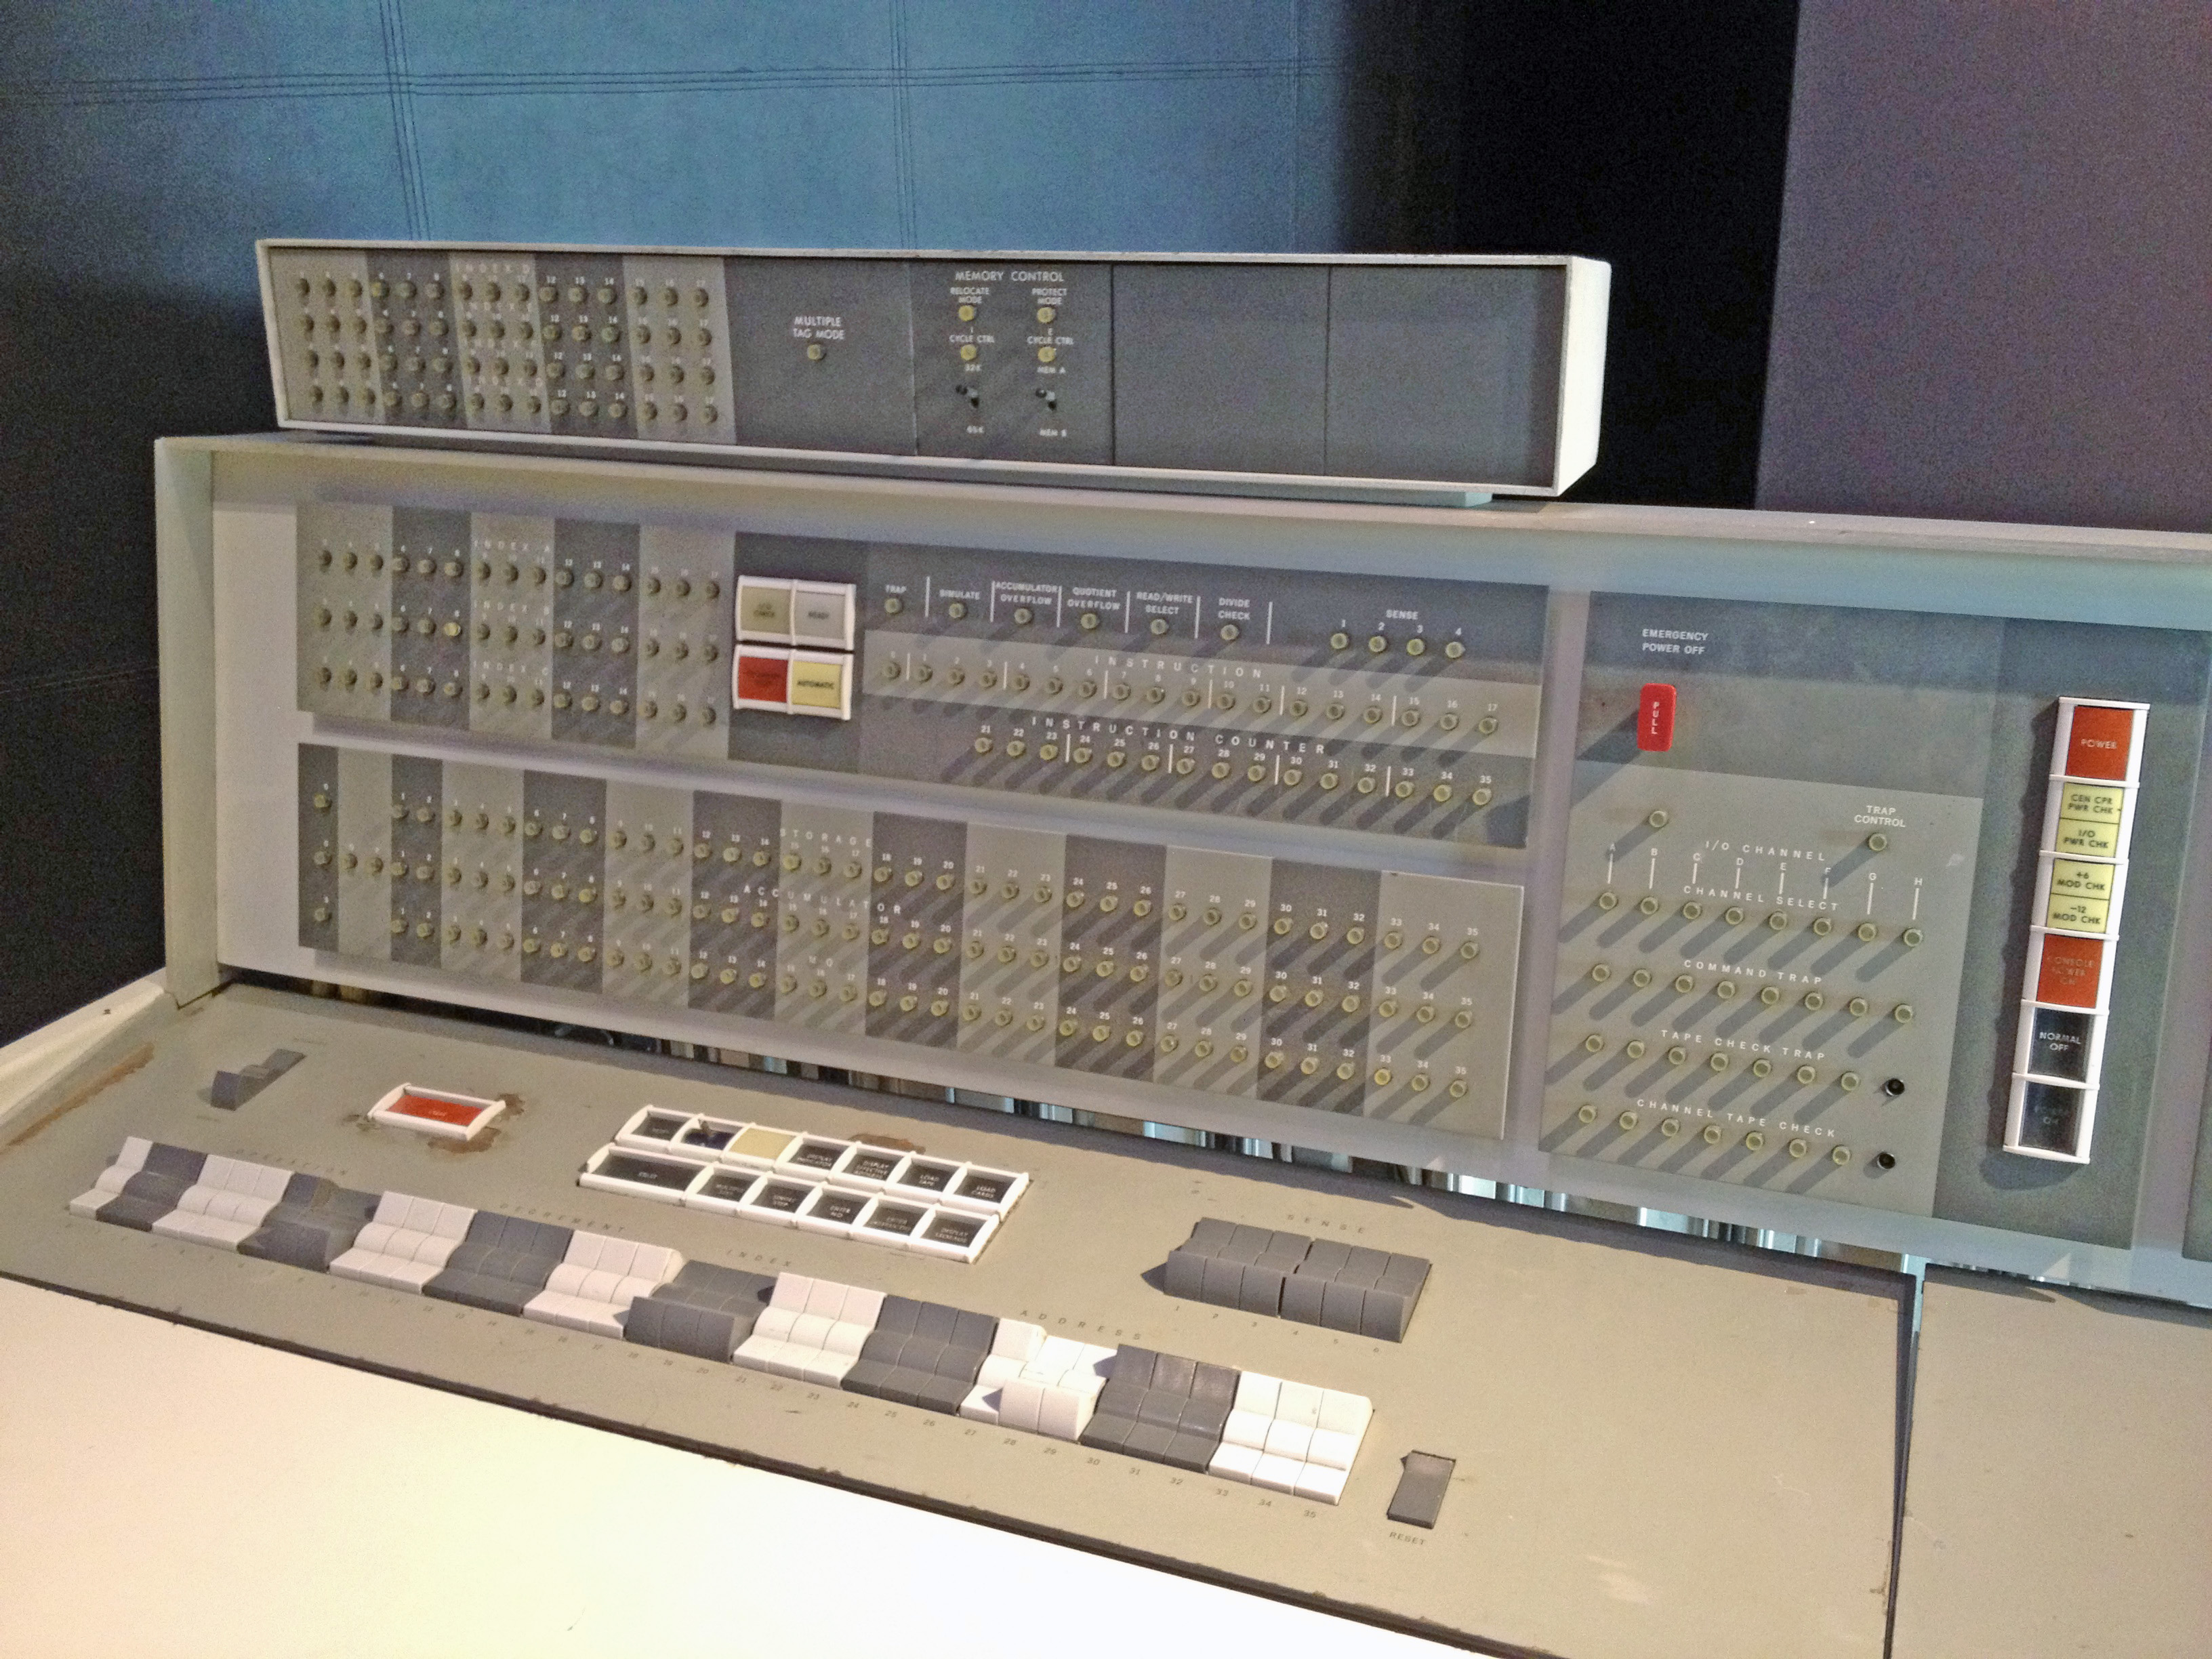 IBM 7090 - Wikipedia, the free encyclopedia